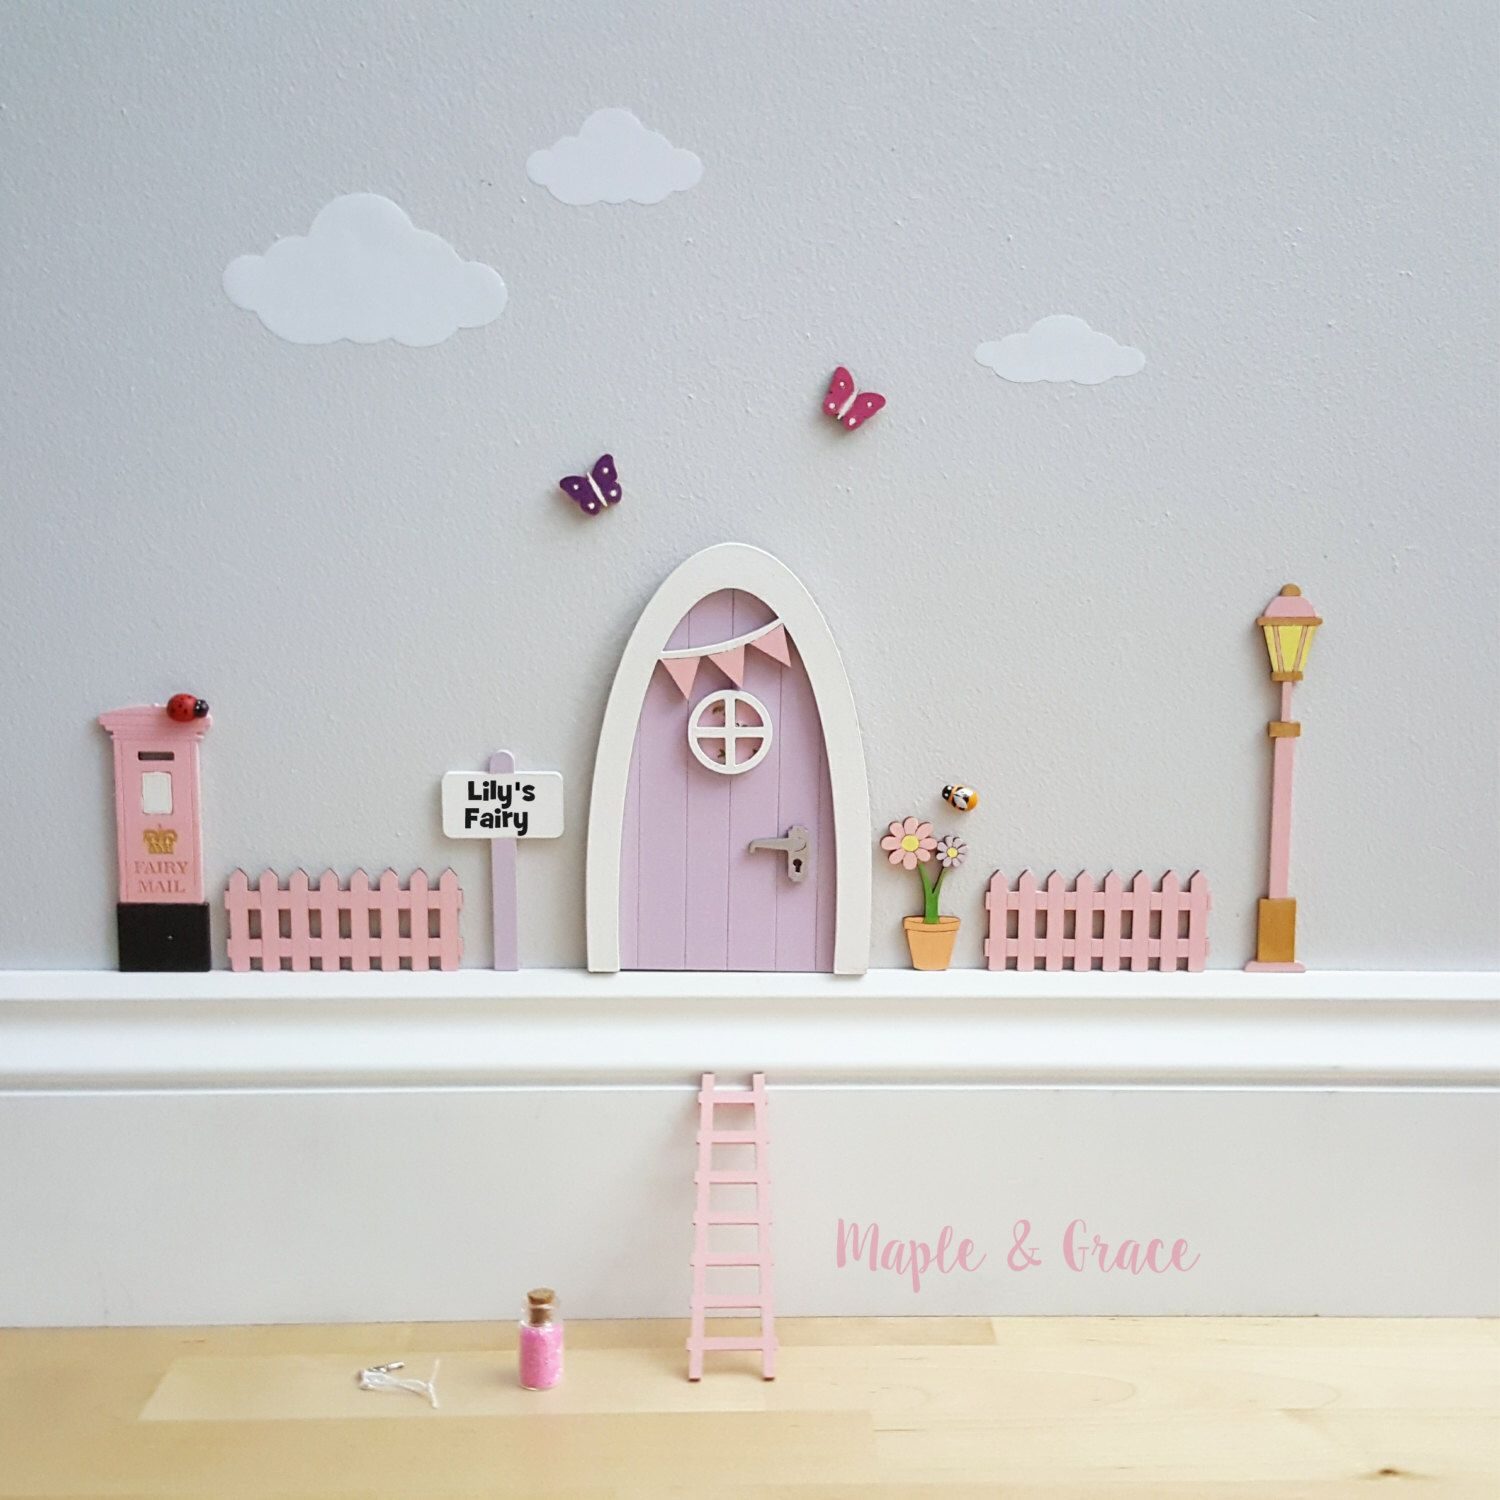 Fairy door lilac with personalised sign and pink accessories kit - tooth fairy - pixie - elf- miniature door